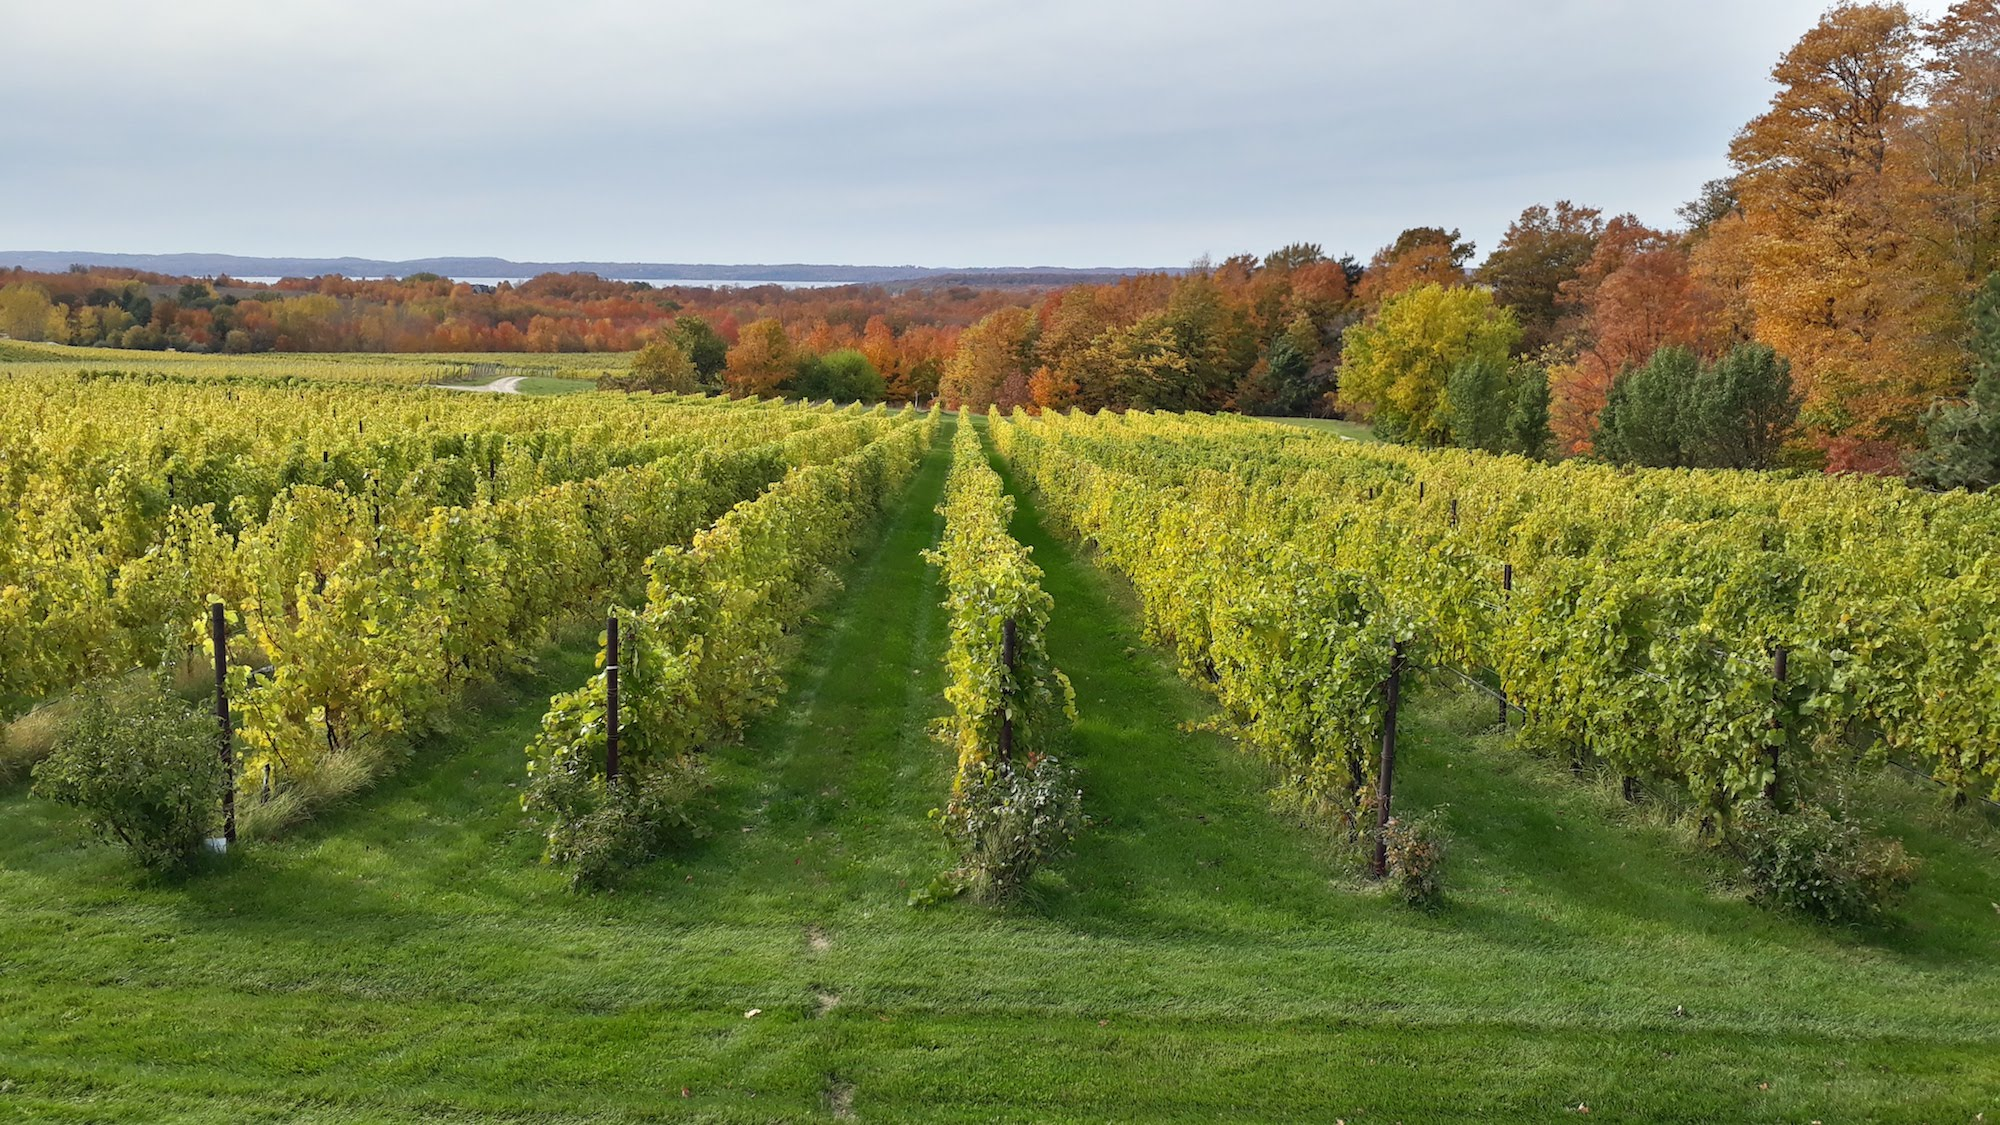 A photo of rows of green grape vines in the foreground. In the background, there are trees with fall foliage